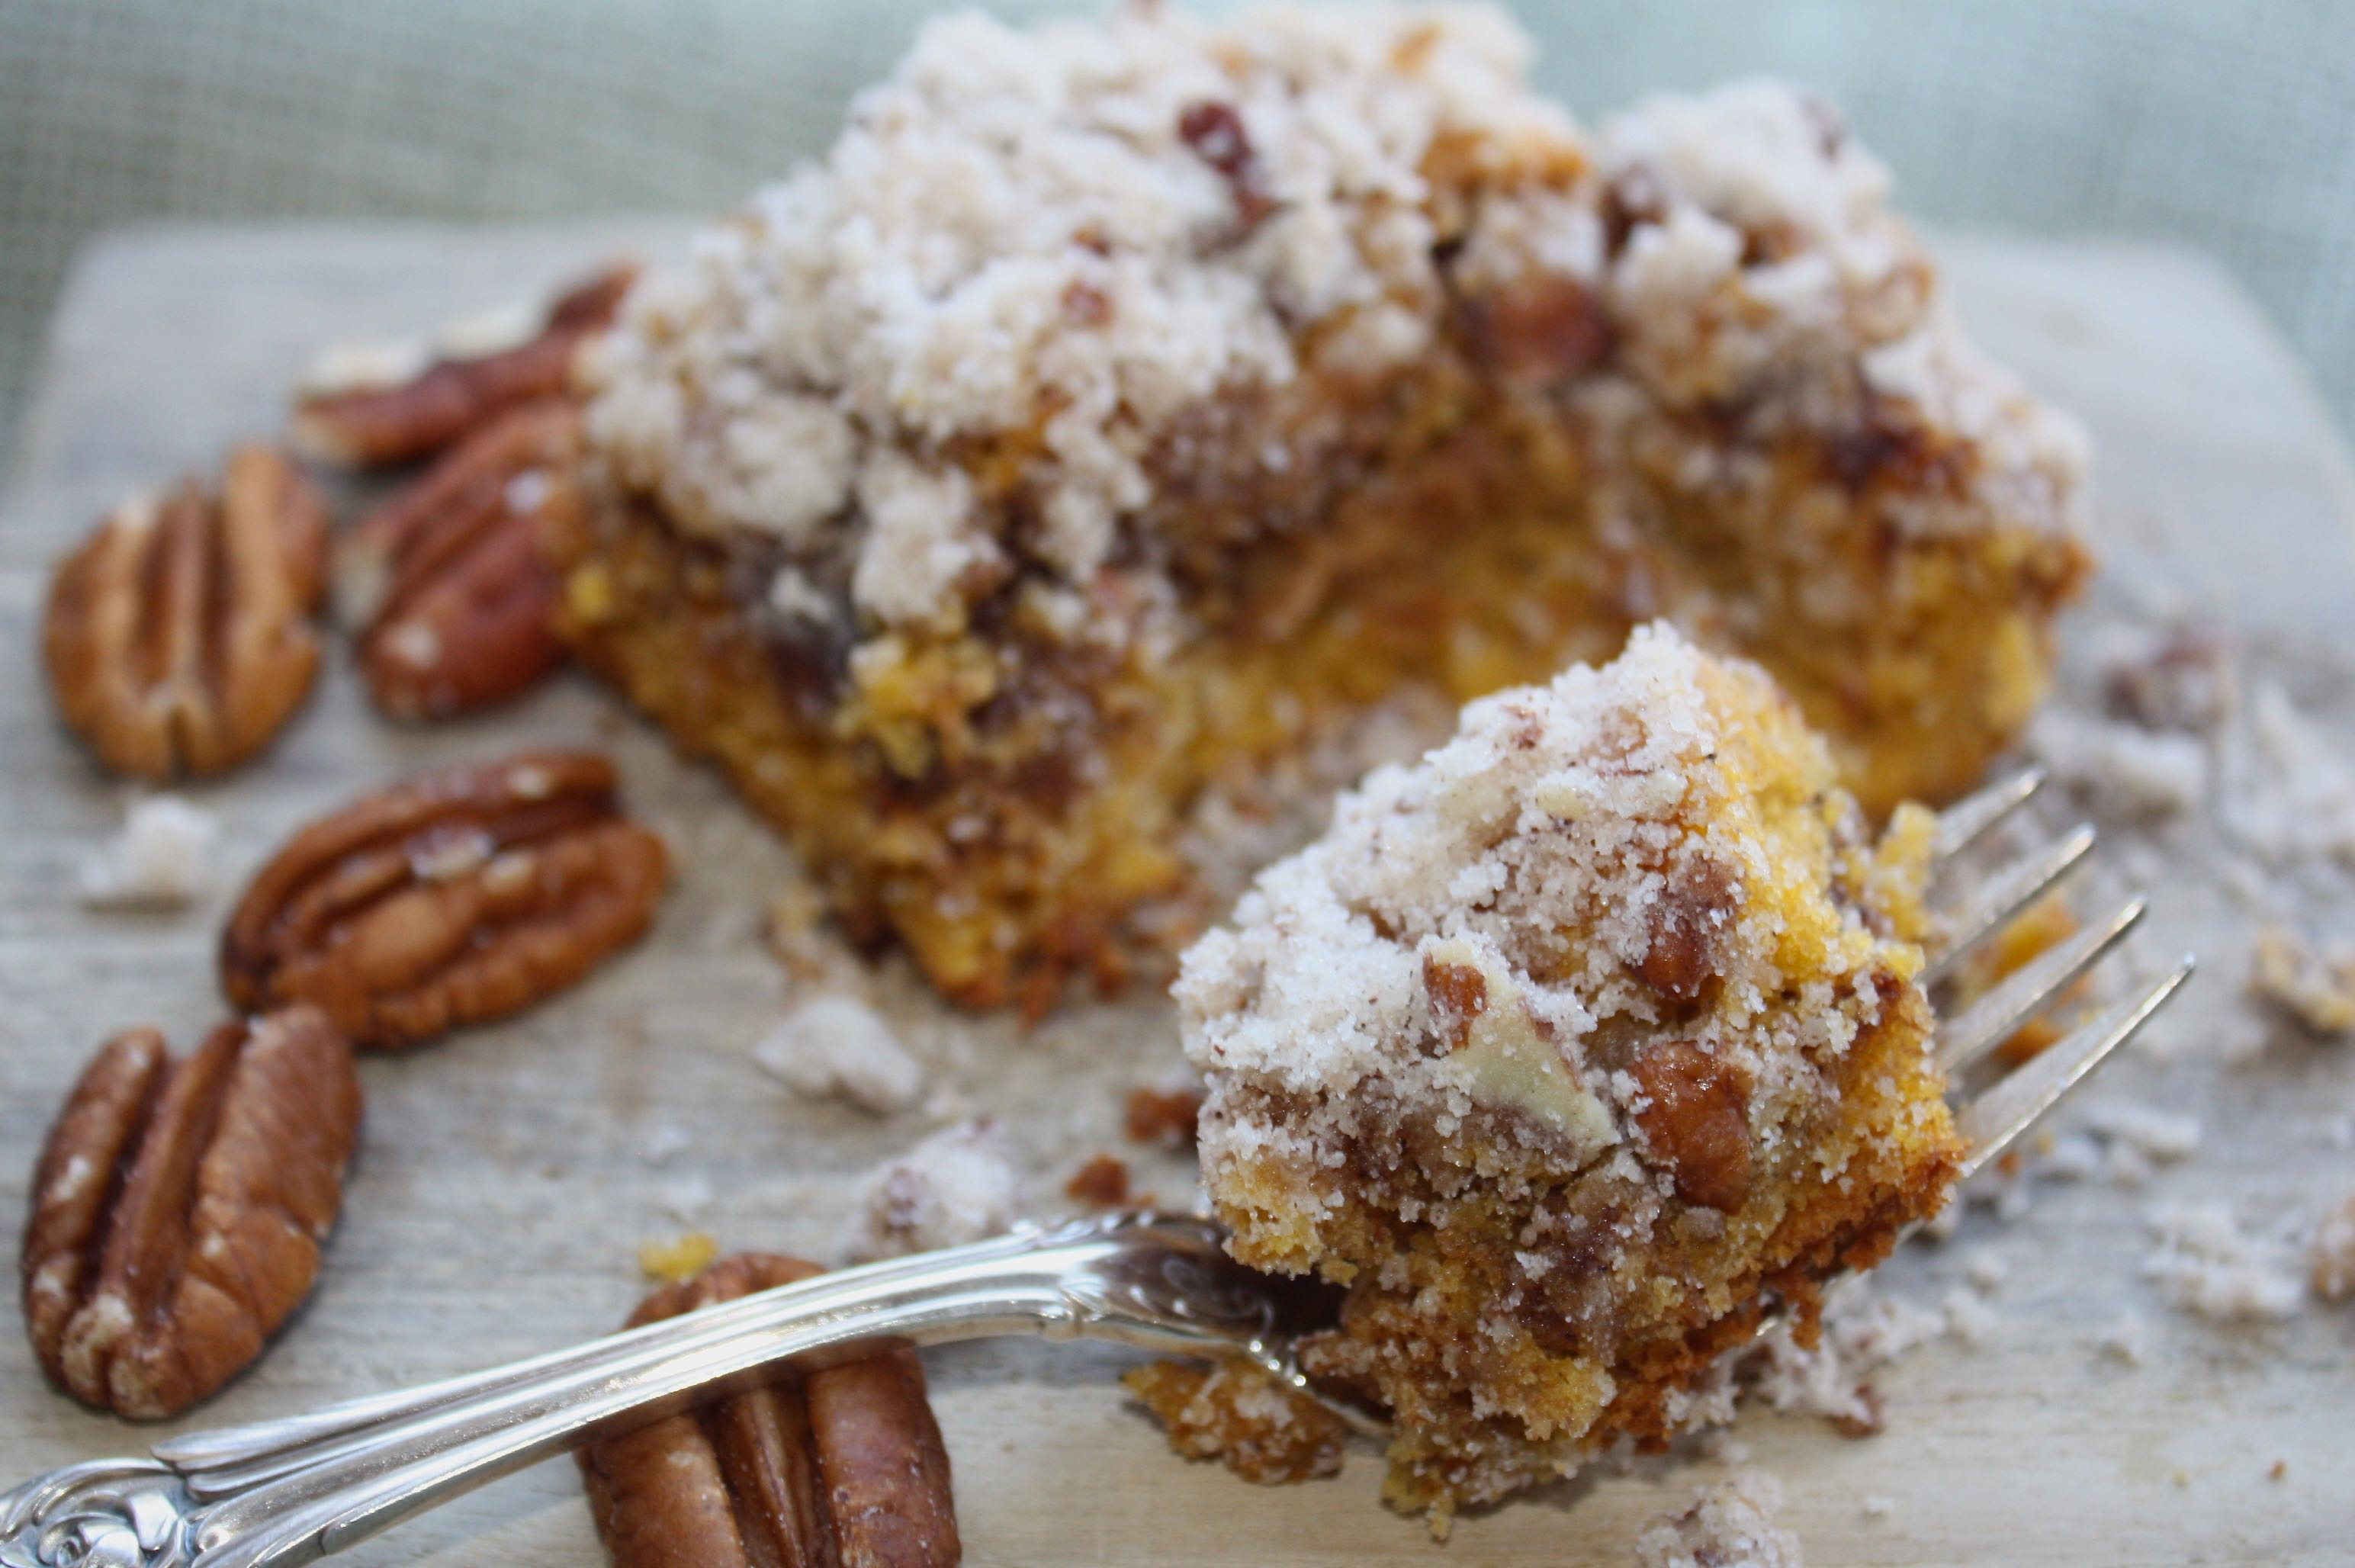 crumb-cake-ready-to-eat